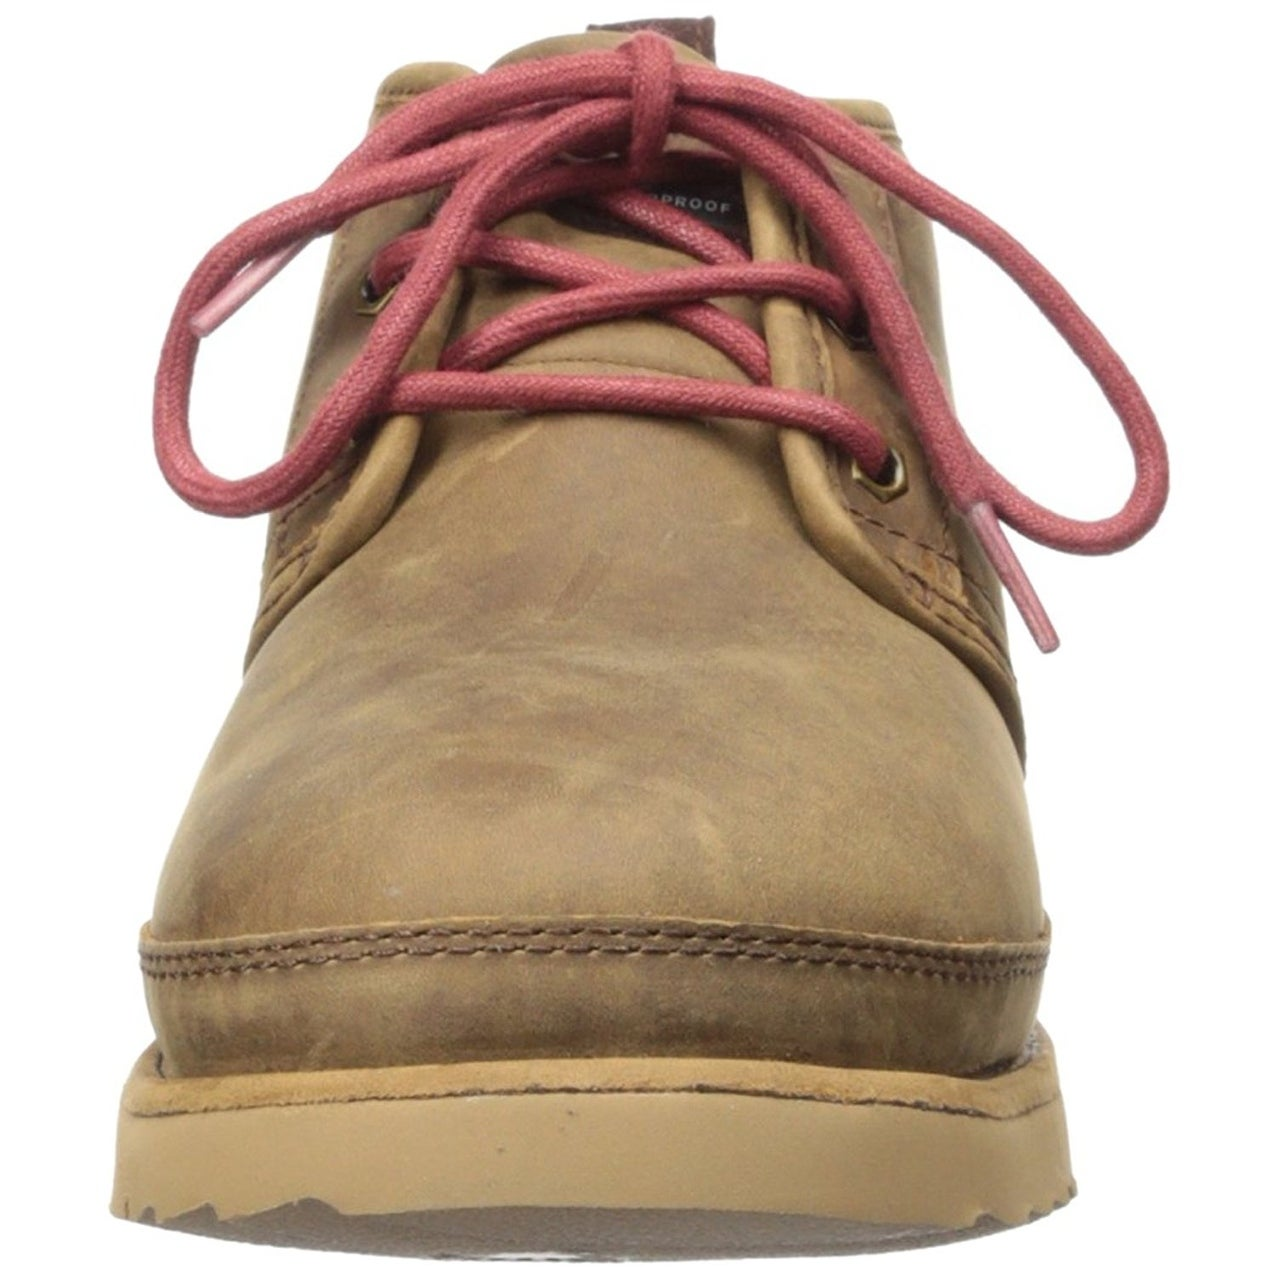 15a202161 Shop UGG Men's Neumel Waterproof Chukka Boot - Free Shipping Today -  Overstock - 23387731